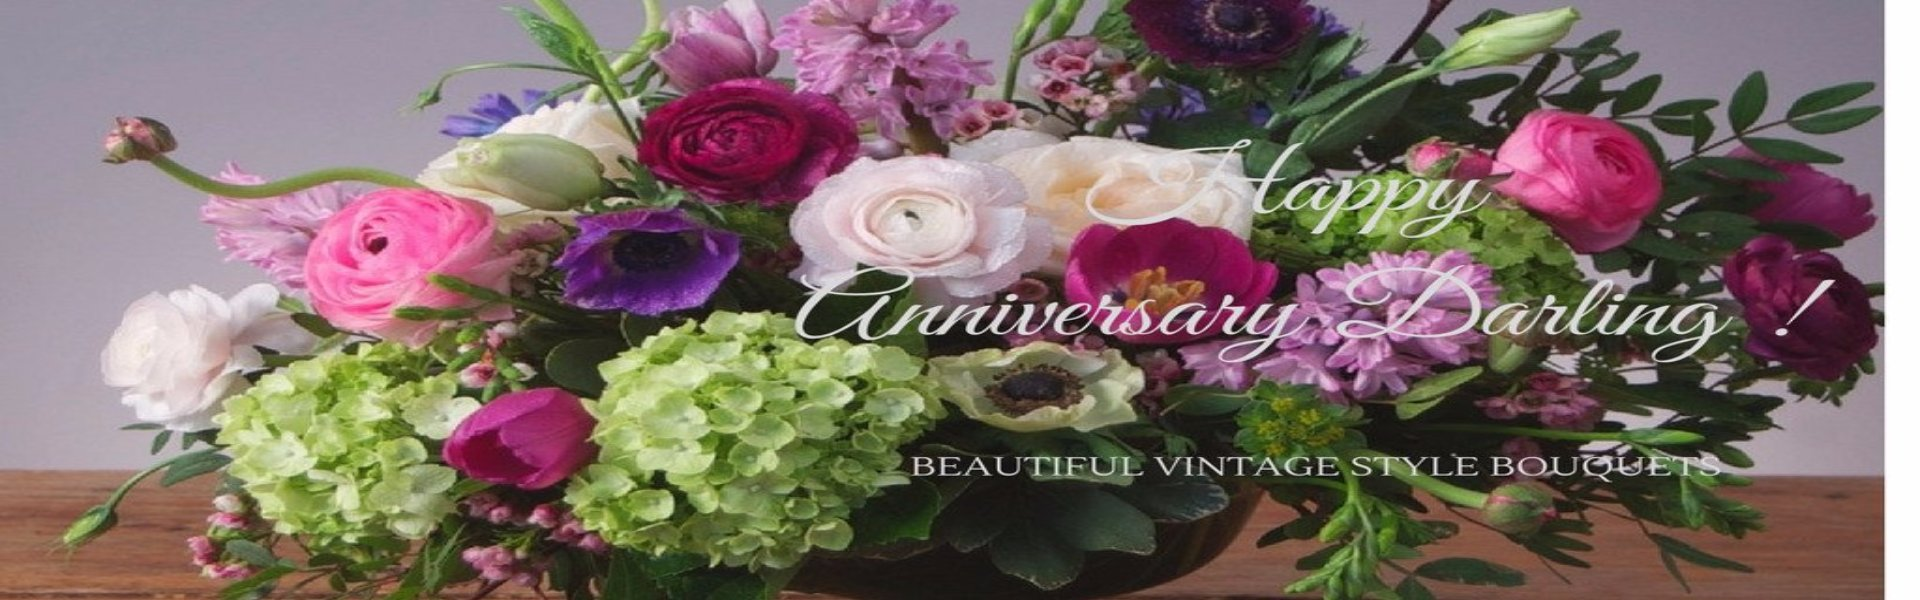 Anniversary Bouquets for delivery in Winchester. Beautiful Roses Joannes Florist Winchester.